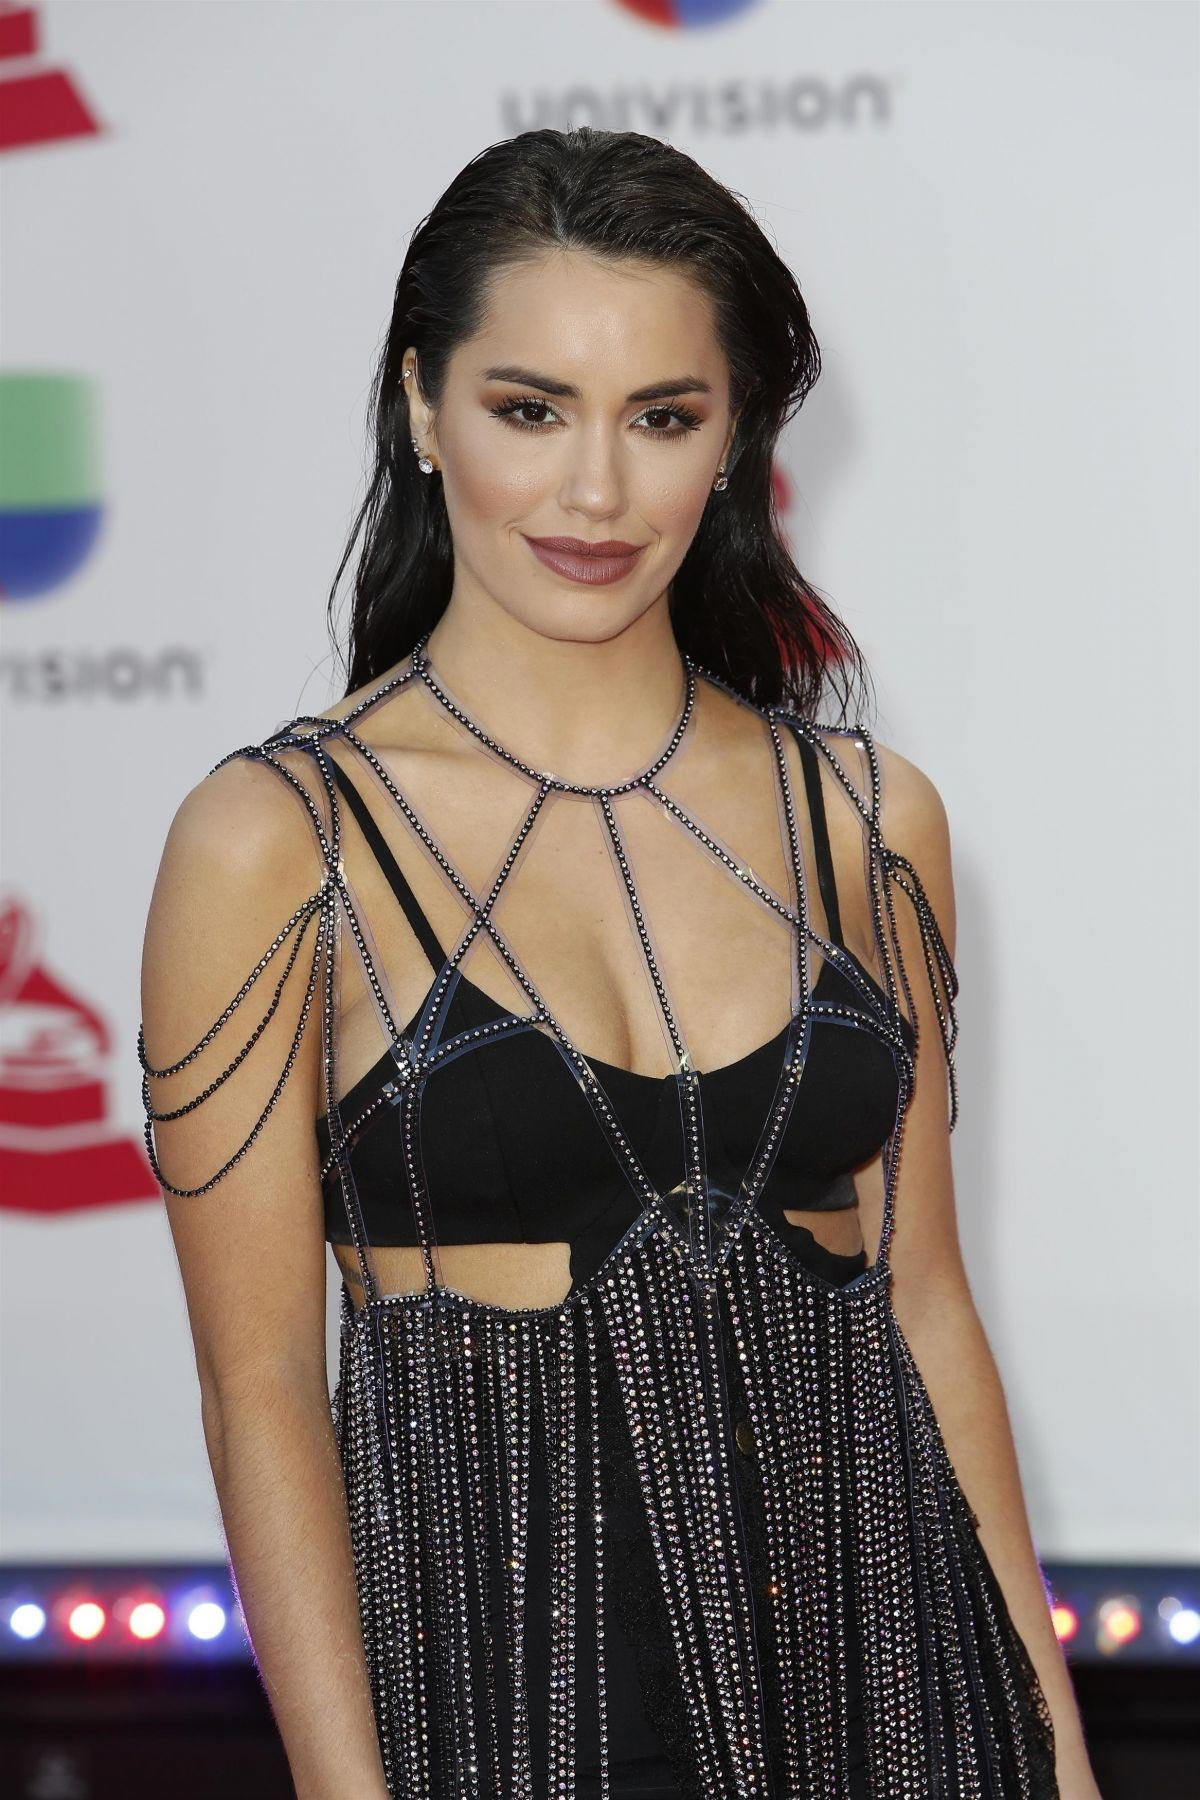 Lali Esposito at 2018 Latin Grammy Awards in Las Vegas 2018/11/15 1